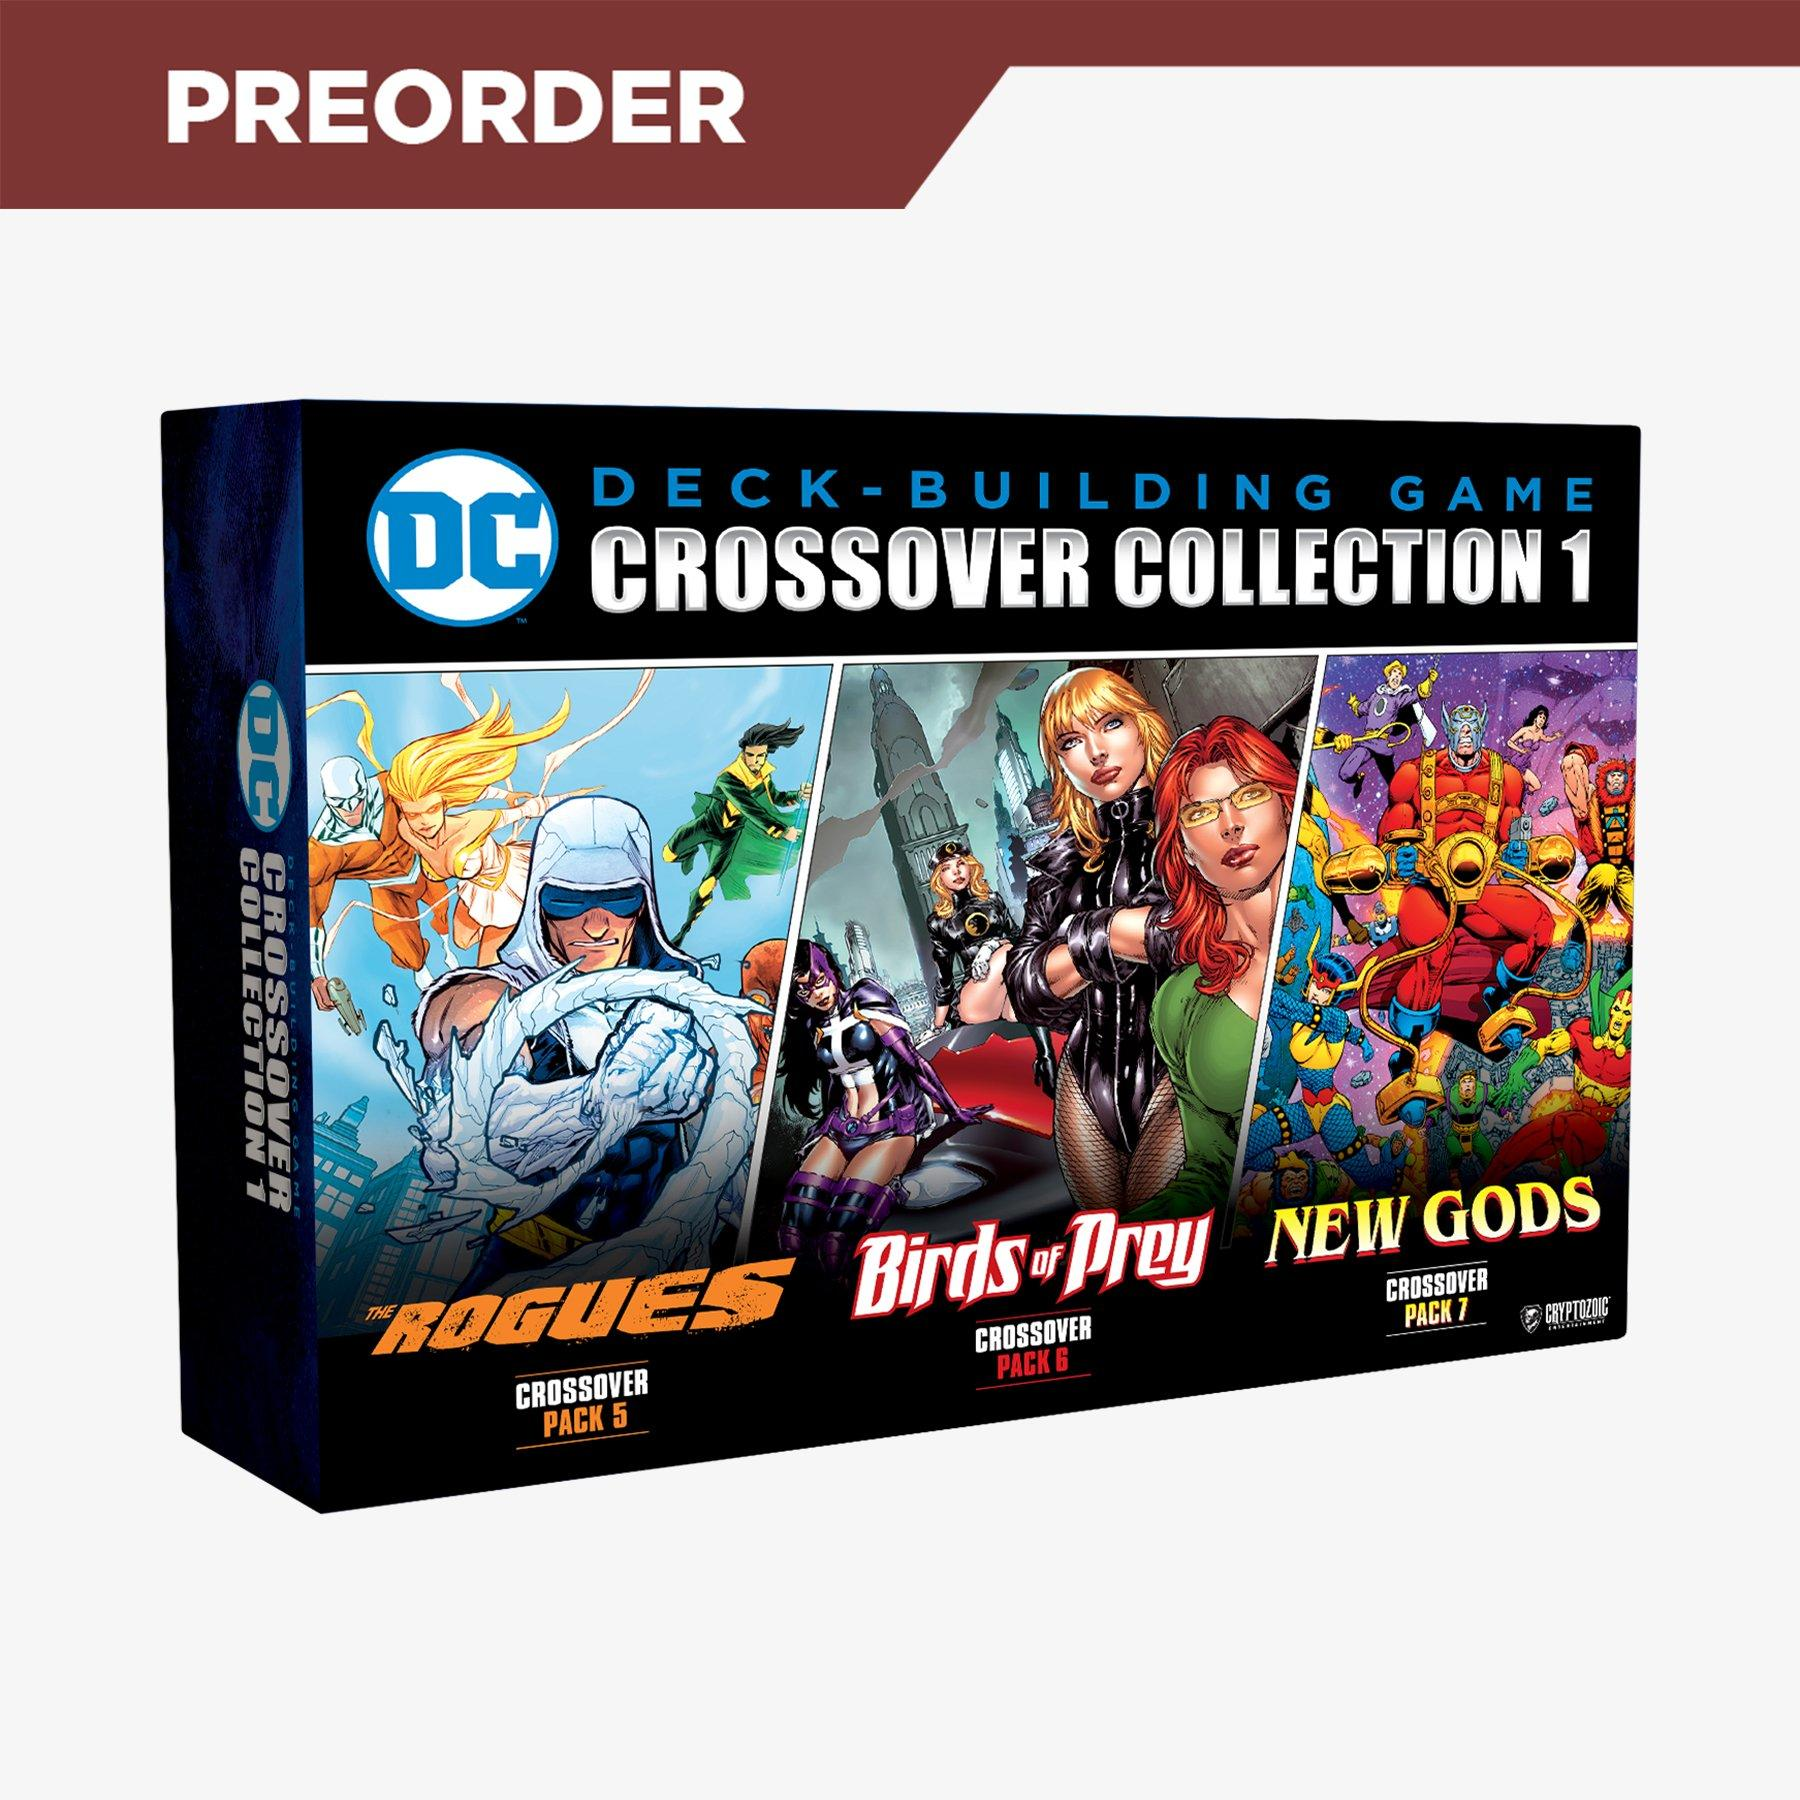 dc-collection-pack-1.jpg